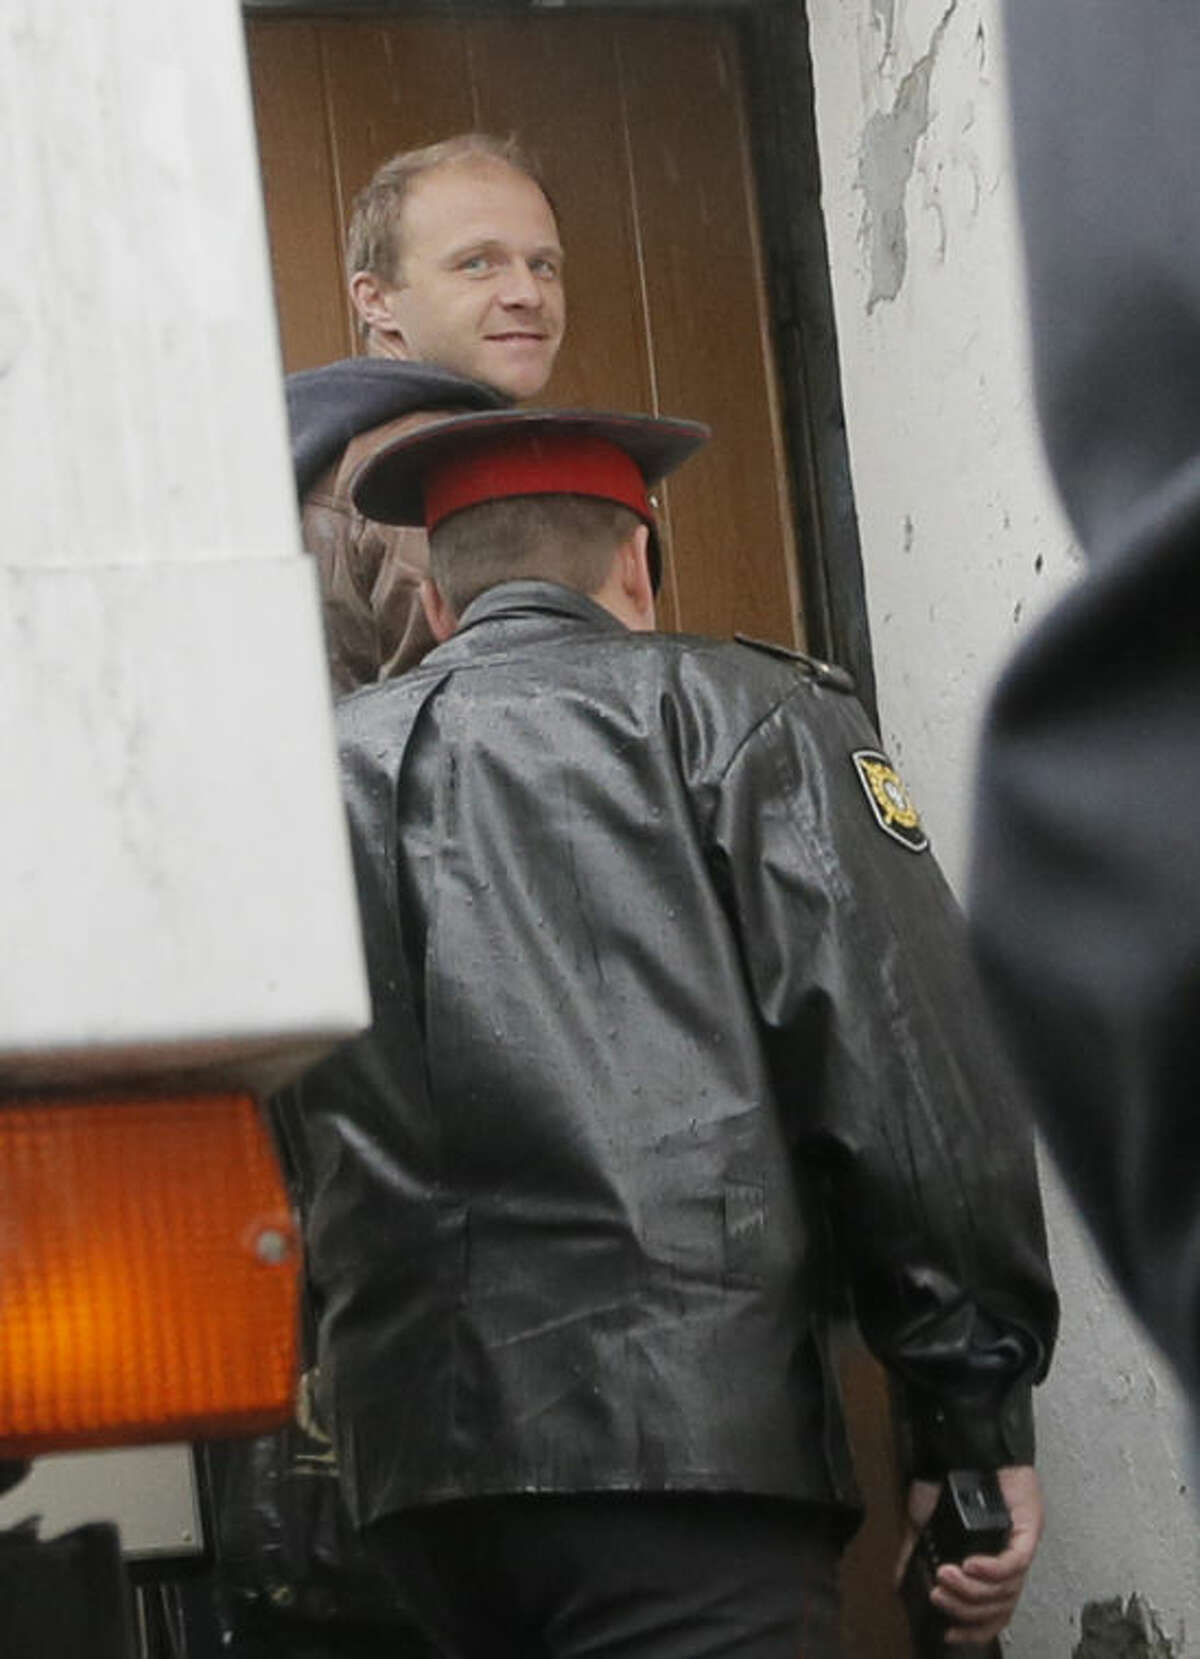 Photographer Denis Sinyakov, top, smiles as he is escorted into a court room in Murmansk, Russia, on Thursday, Sept. 26, 2013. A Russian court on Thursday jailed a photographer Denis Sinyakov, who was part of the 30-member Greenpeace team protesting near an oil platform last week. Two members of the group were detained Sept. 18 in their attempt to scale the Russian Arctic platform. The Coast Guard seized Greenpeace's ship the next day and towed it with the 30 activists aboard, to Murmansk. The activists are being investigated for piracy. (AP Photo/Efrem Lukatsky)